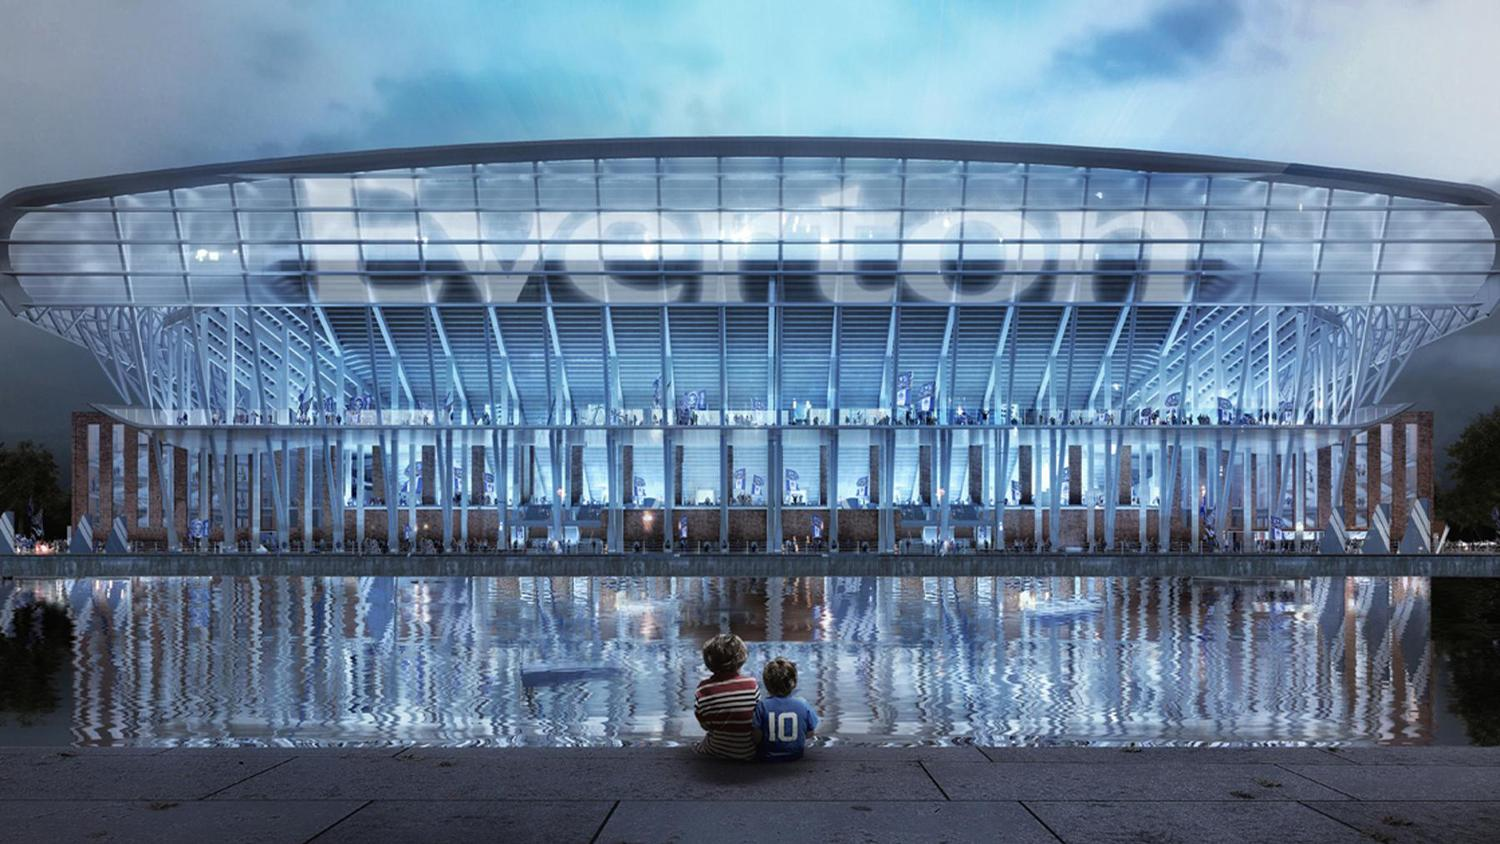 The venue will be built on a north-south orientation